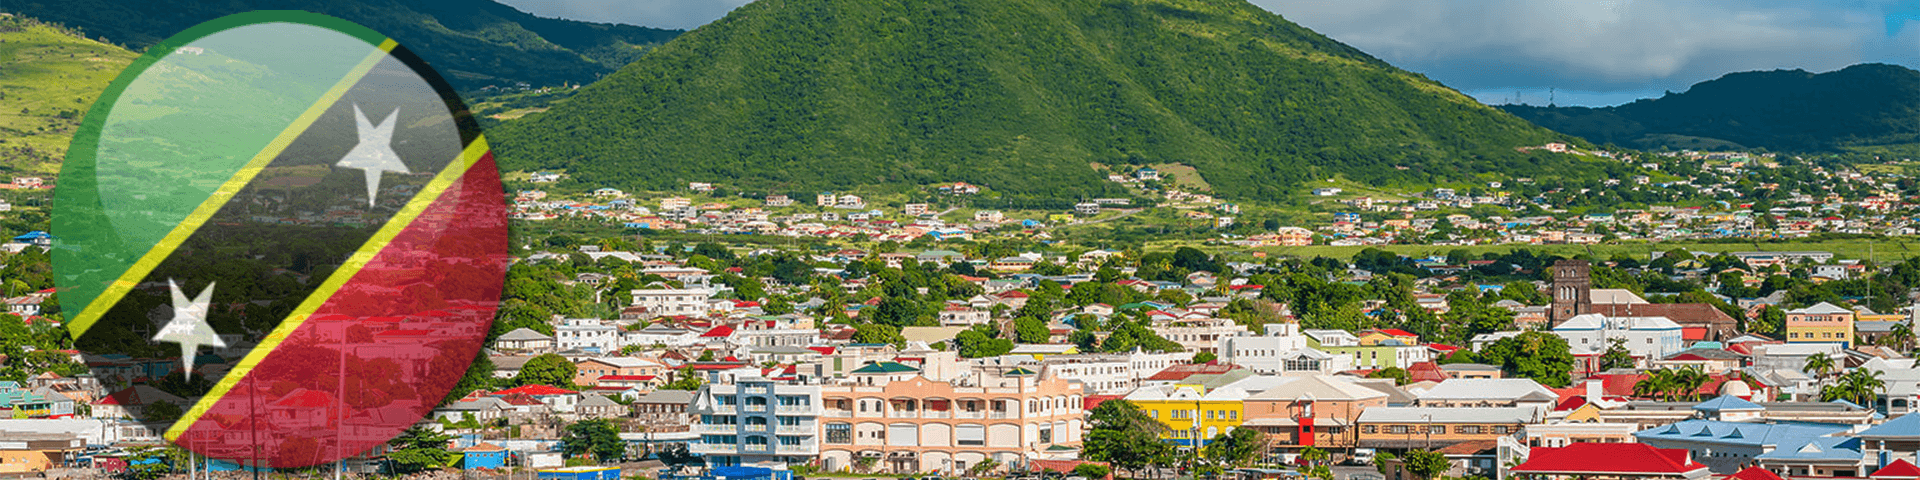 St. Kitts and Nevis banner image